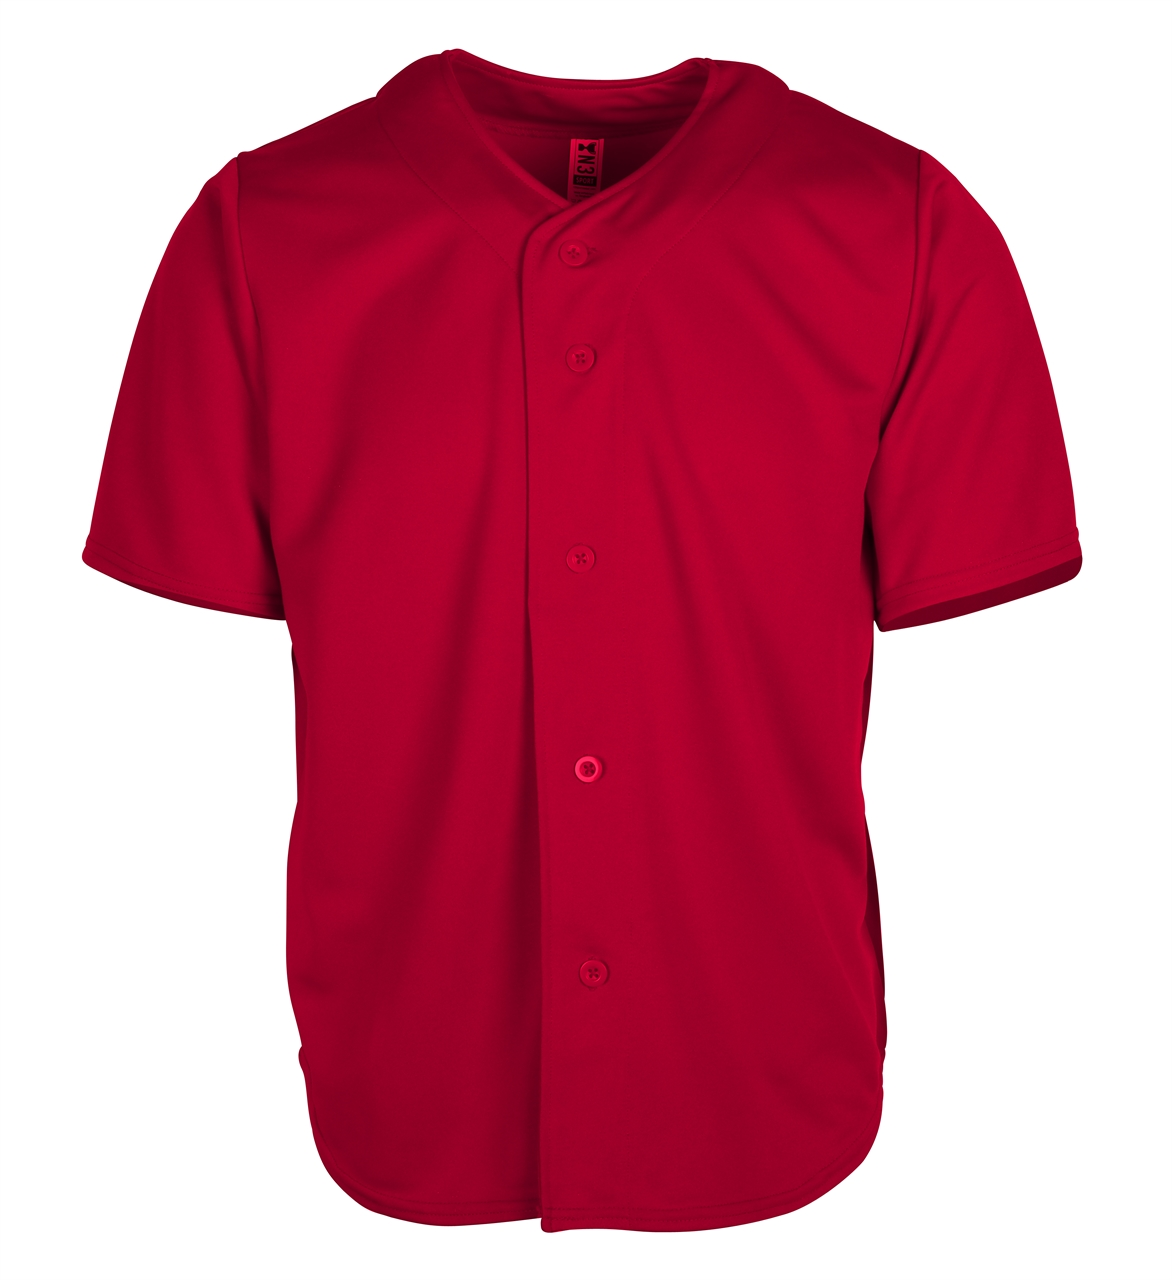 3e1a4cec58e N3 Sport Full Button Baseball Jersey. N30021. This product is available for  Hot Rush